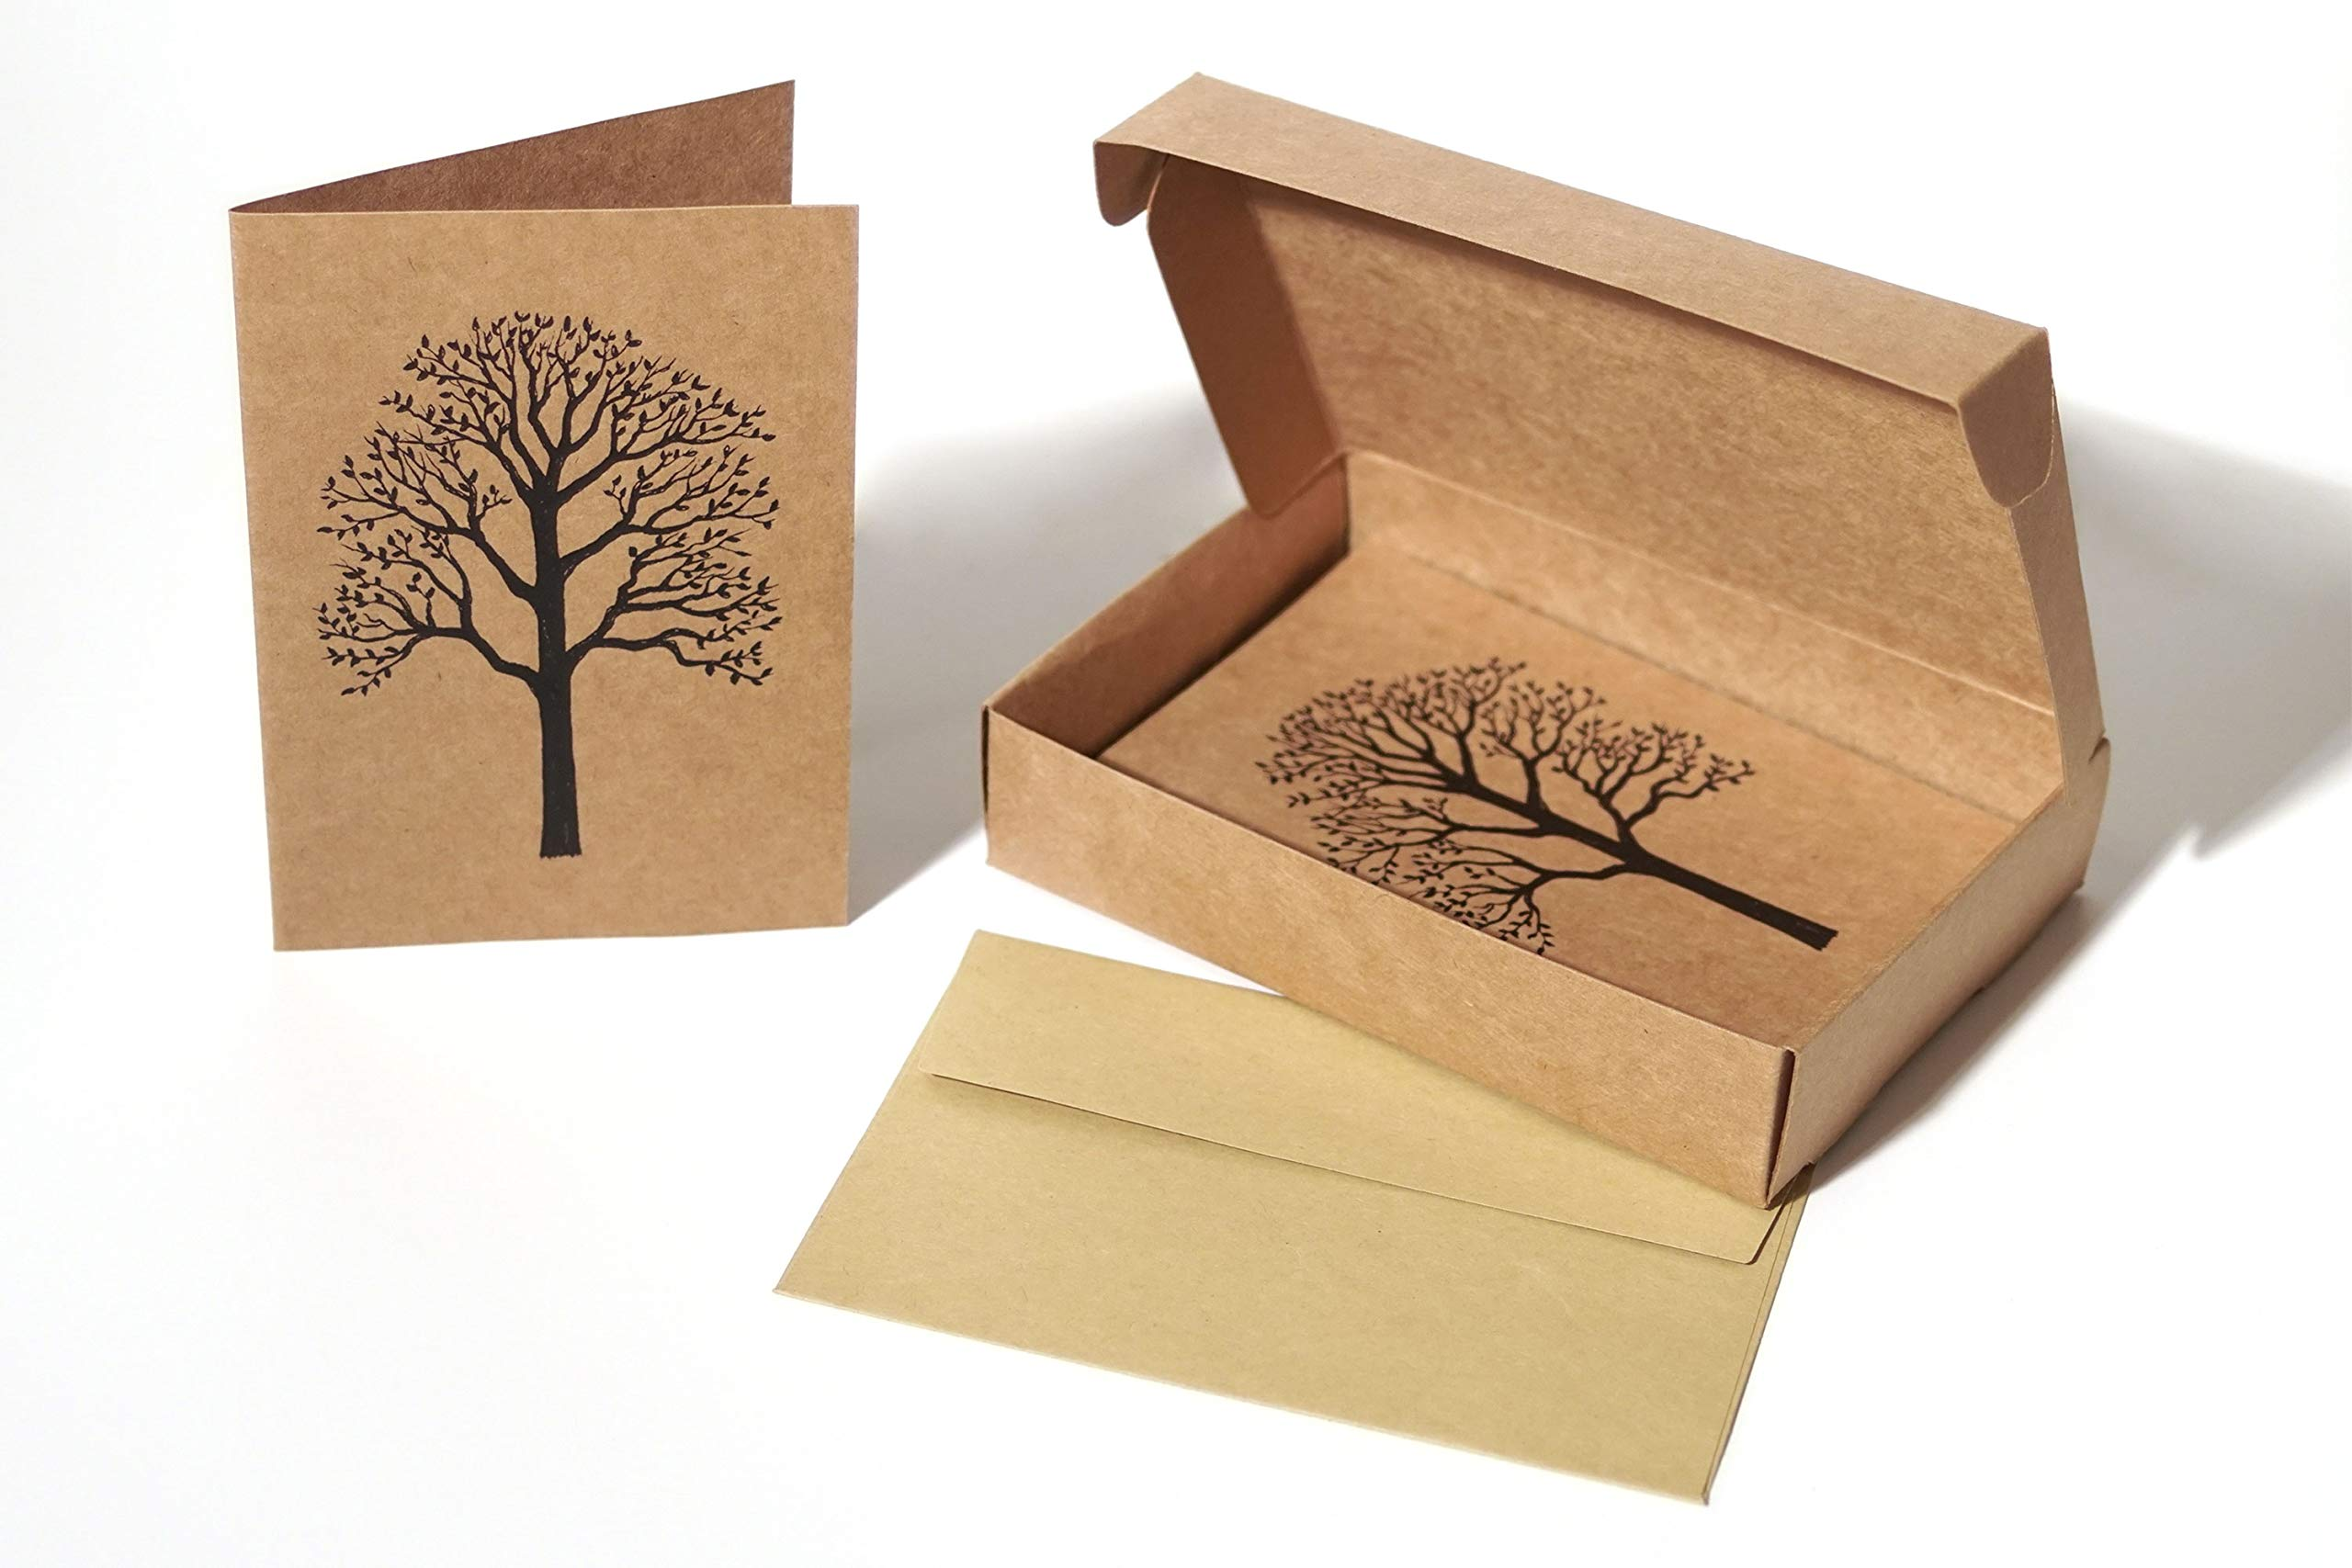 All Occasion Note Cards with Envelopes - Stationary Box Set of 20 Blank Kraft Paper Card Pack - 4 X 6 Recycled Cardstock Notecards with Natural Tree Design by Foxglover Greetings